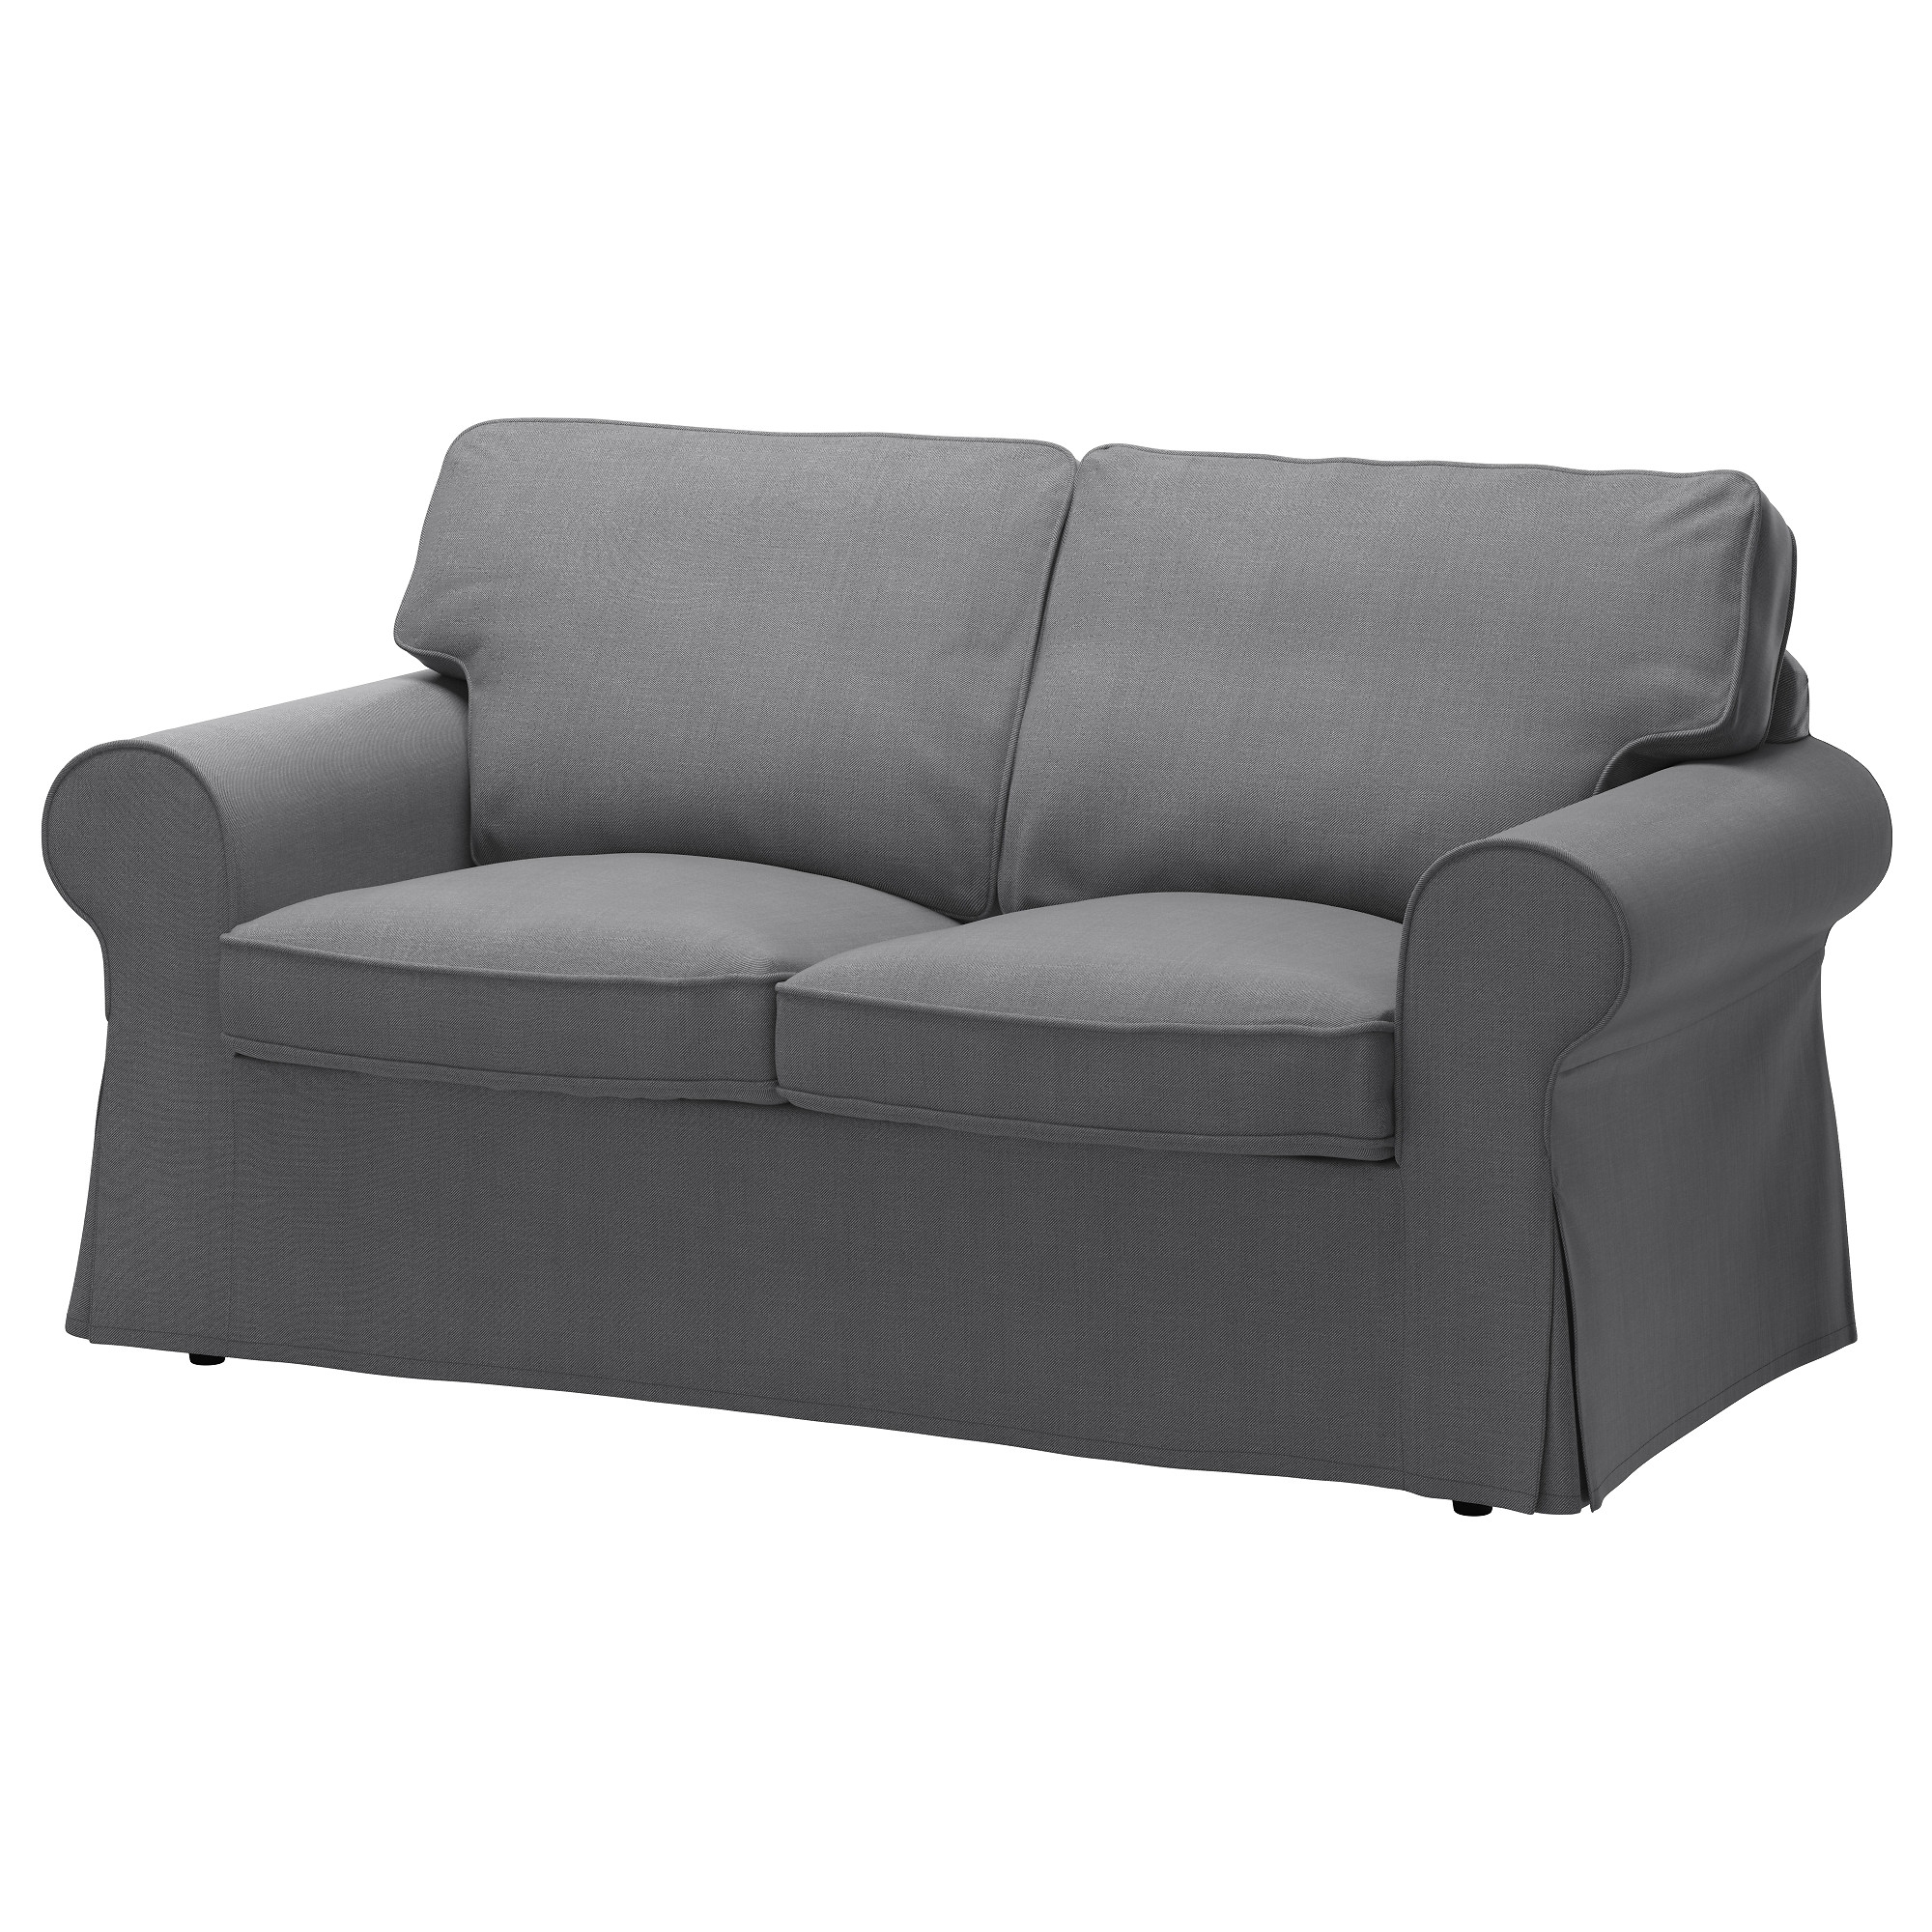 Ektorp - Ikea throughout Sofas With Removable Cover (Image 1 of 10)